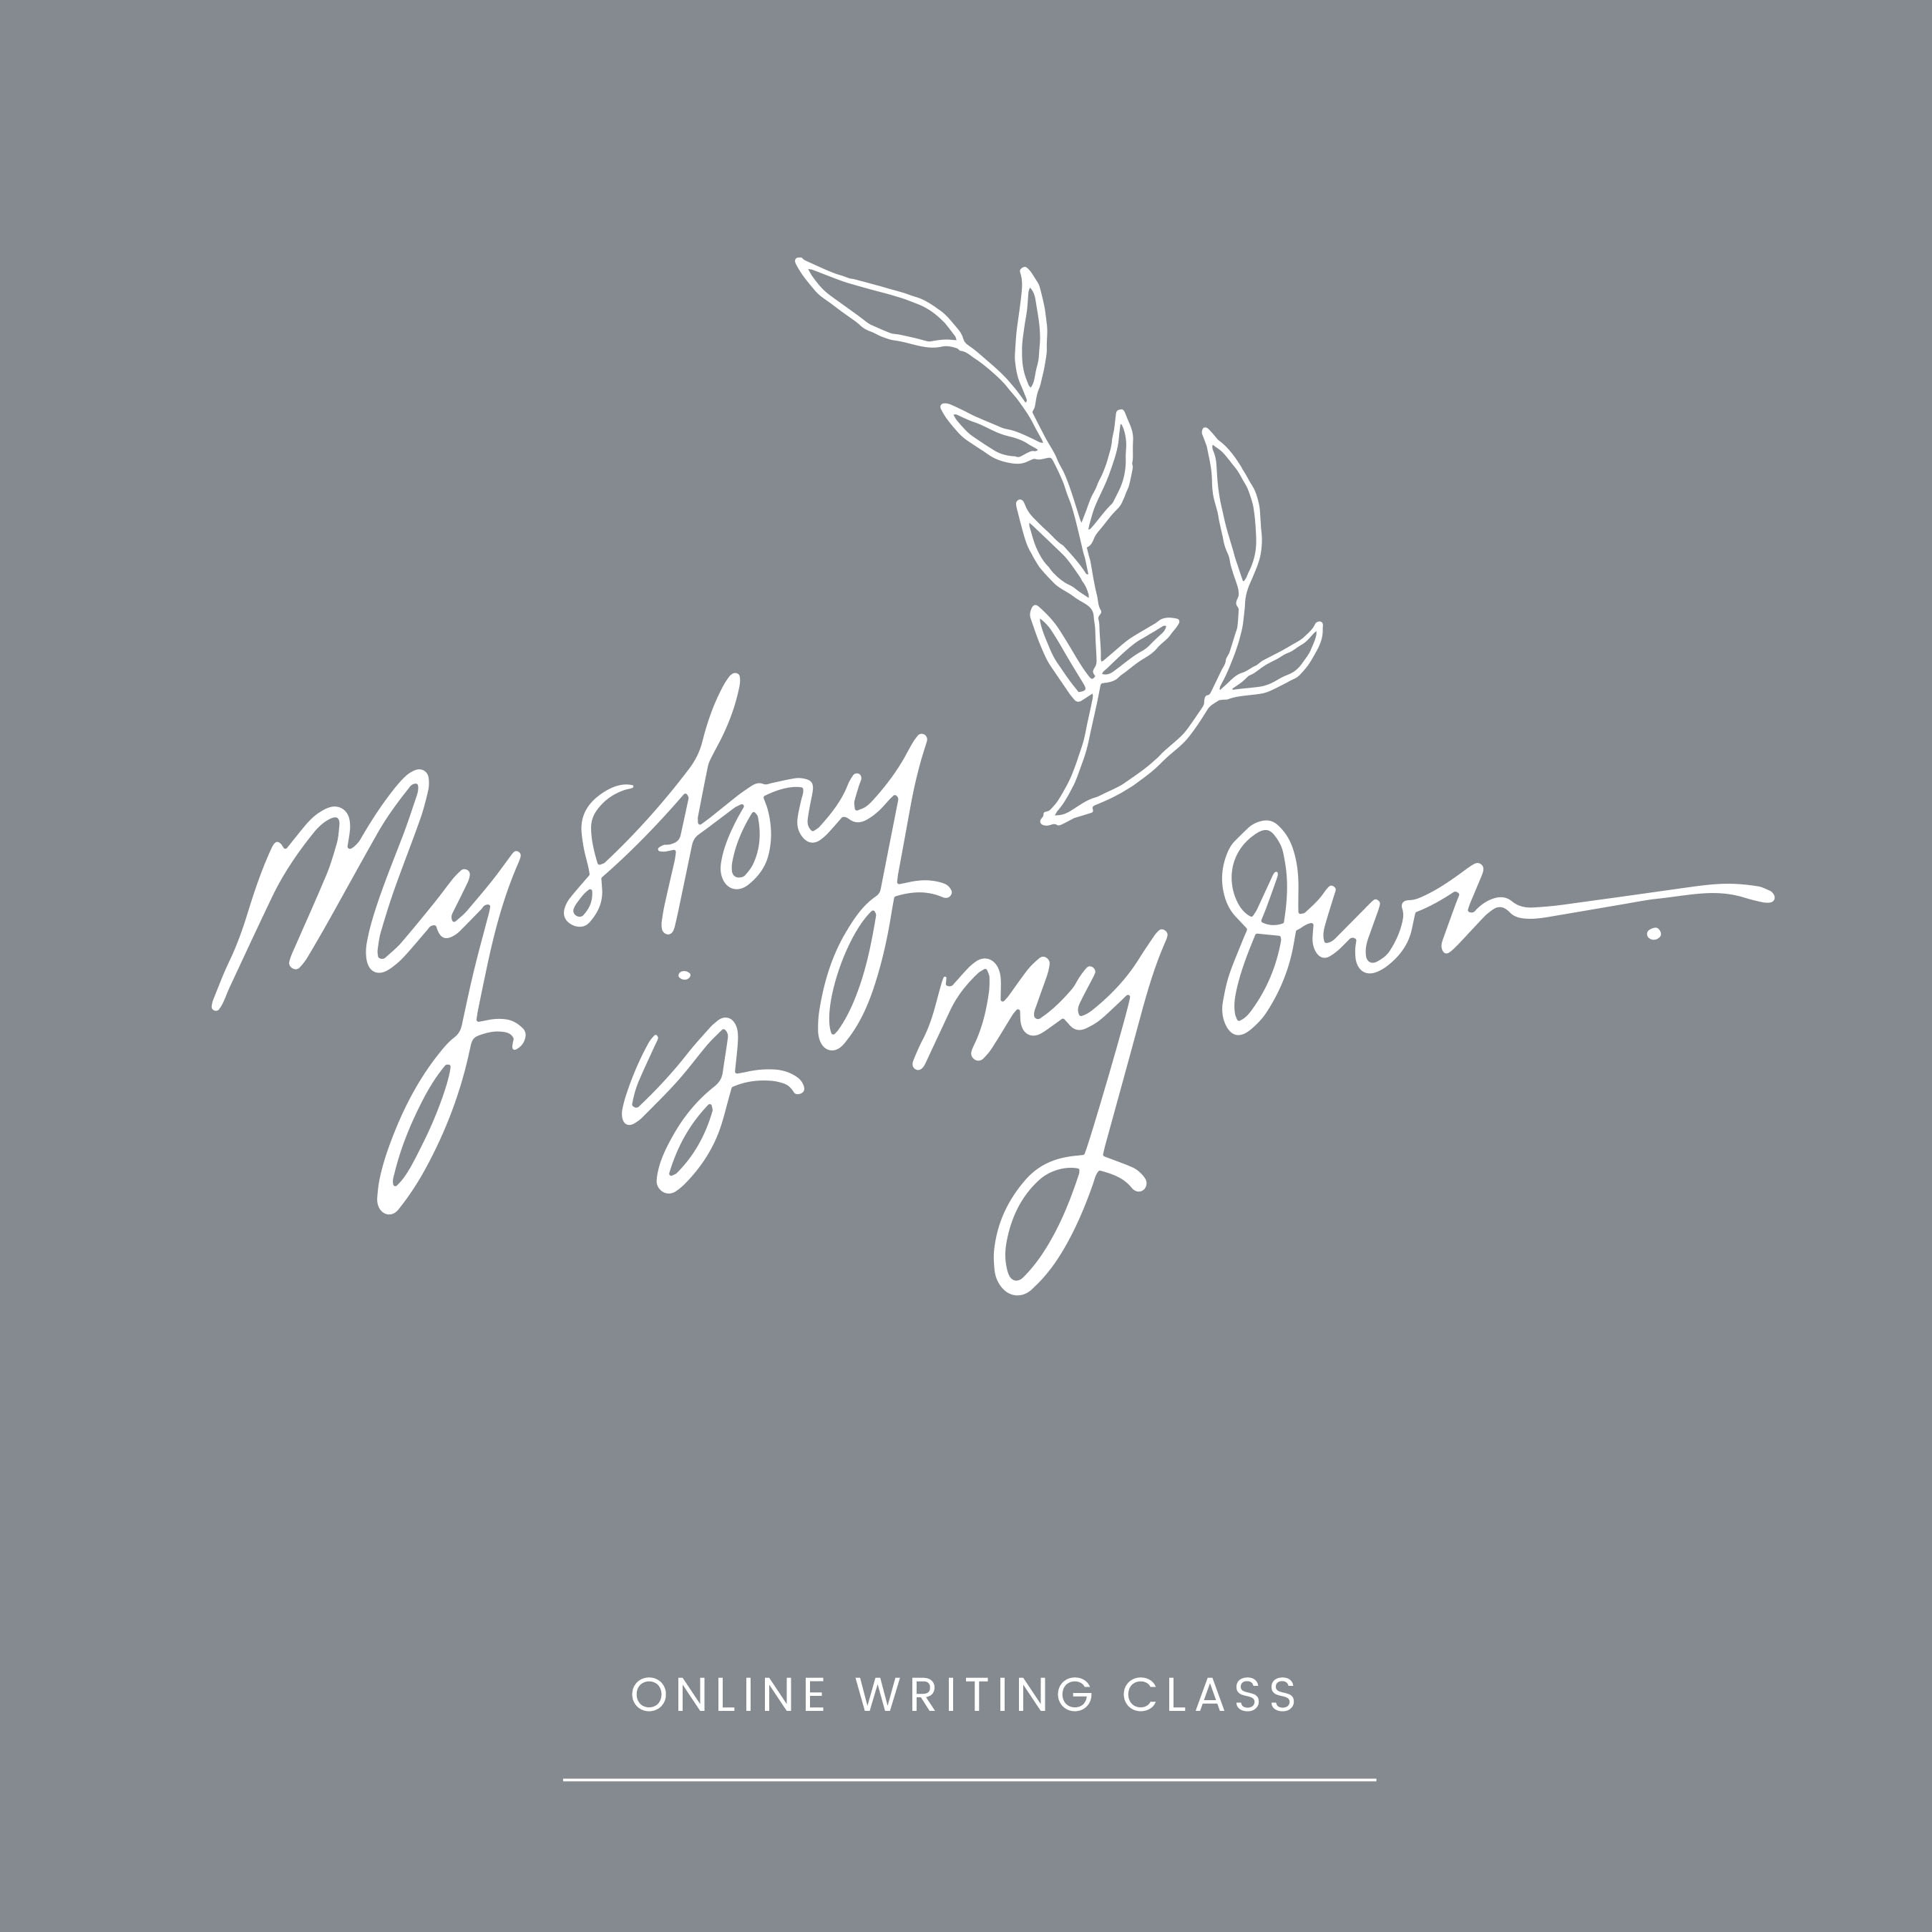 My Story is My Own - Elementary Online Book Writing Course ($2,997.00)